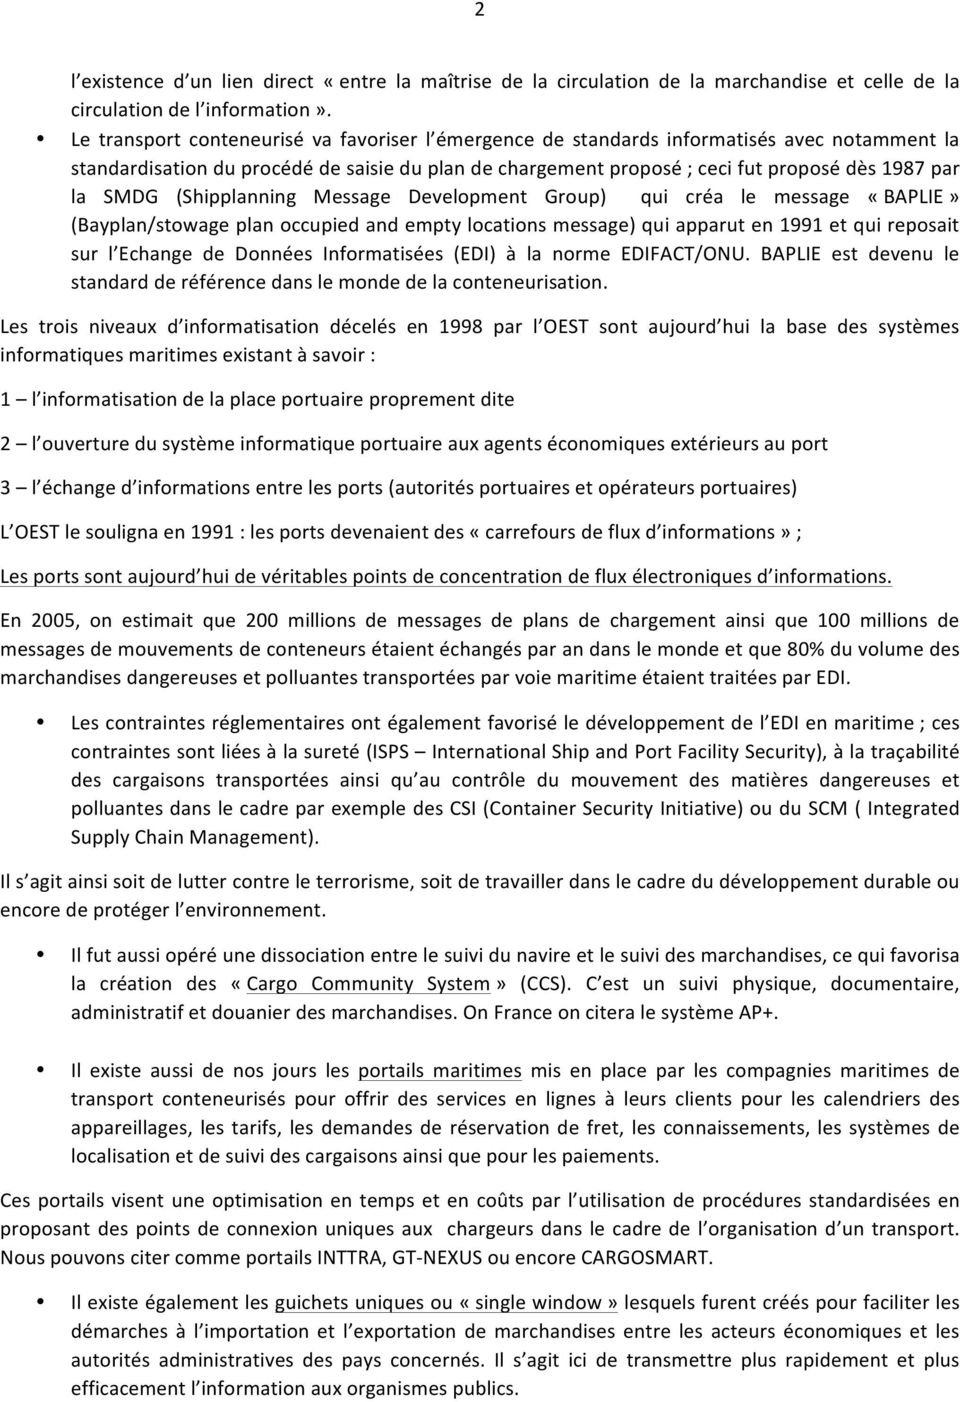 SMDG (Shipplanning Message Development Group) qui créa le message «BAPLIE» (Bayplan/stowage plan occupied and empty locations message) qui apparut en 1991 et qui reposait sur l Echange de Données